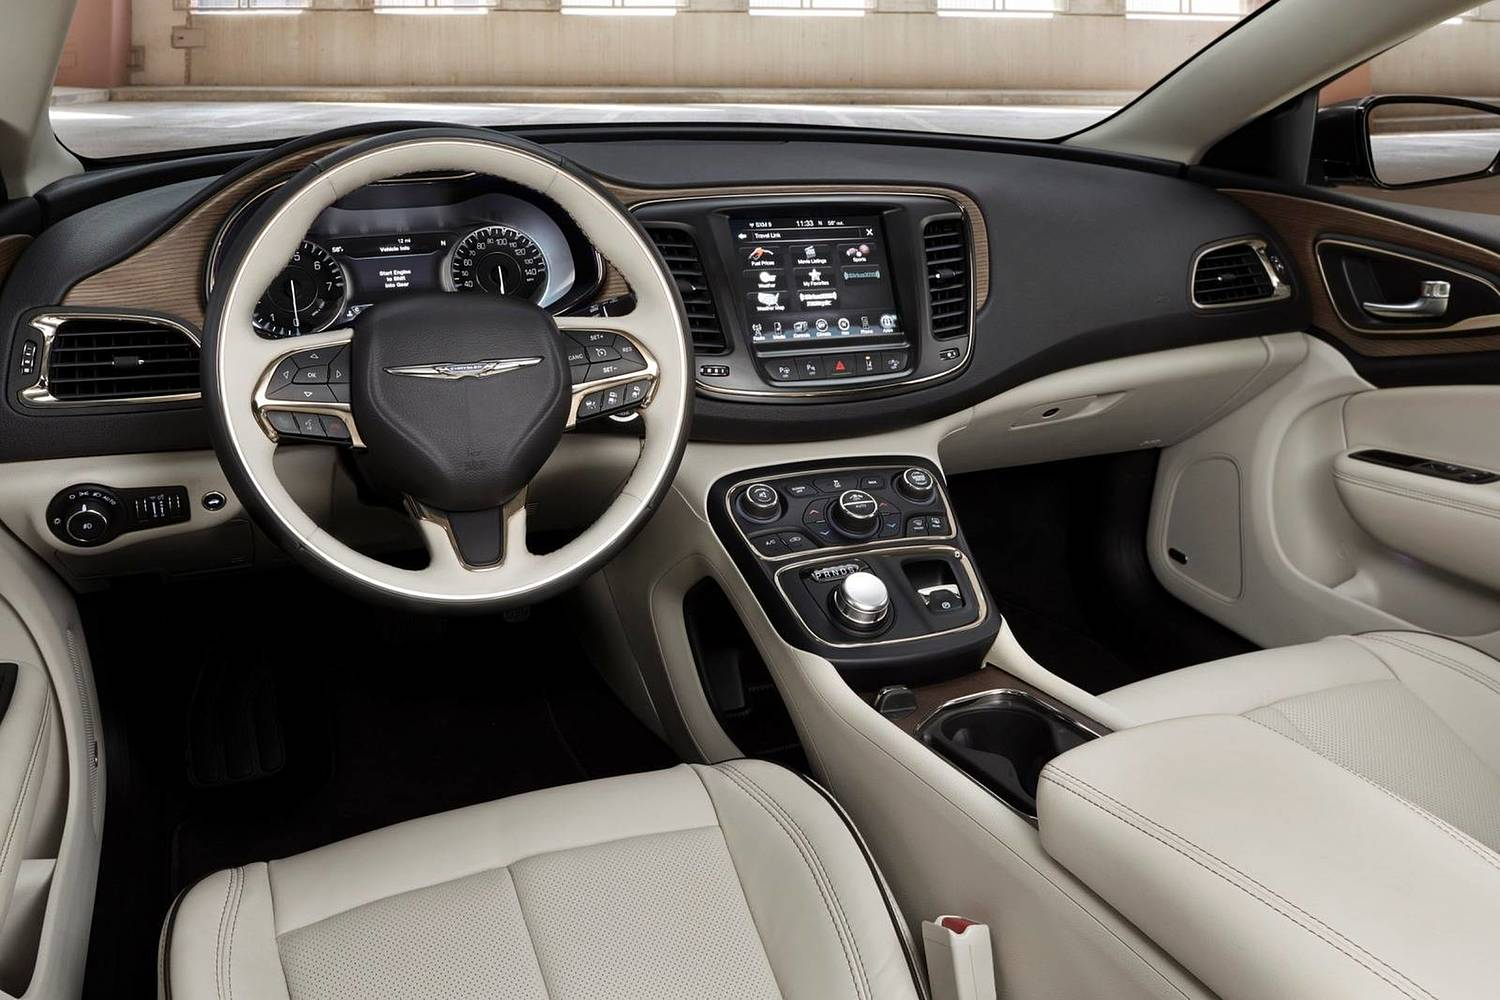 Chrysler 200 C Sedan Interior (2015 model year shown)